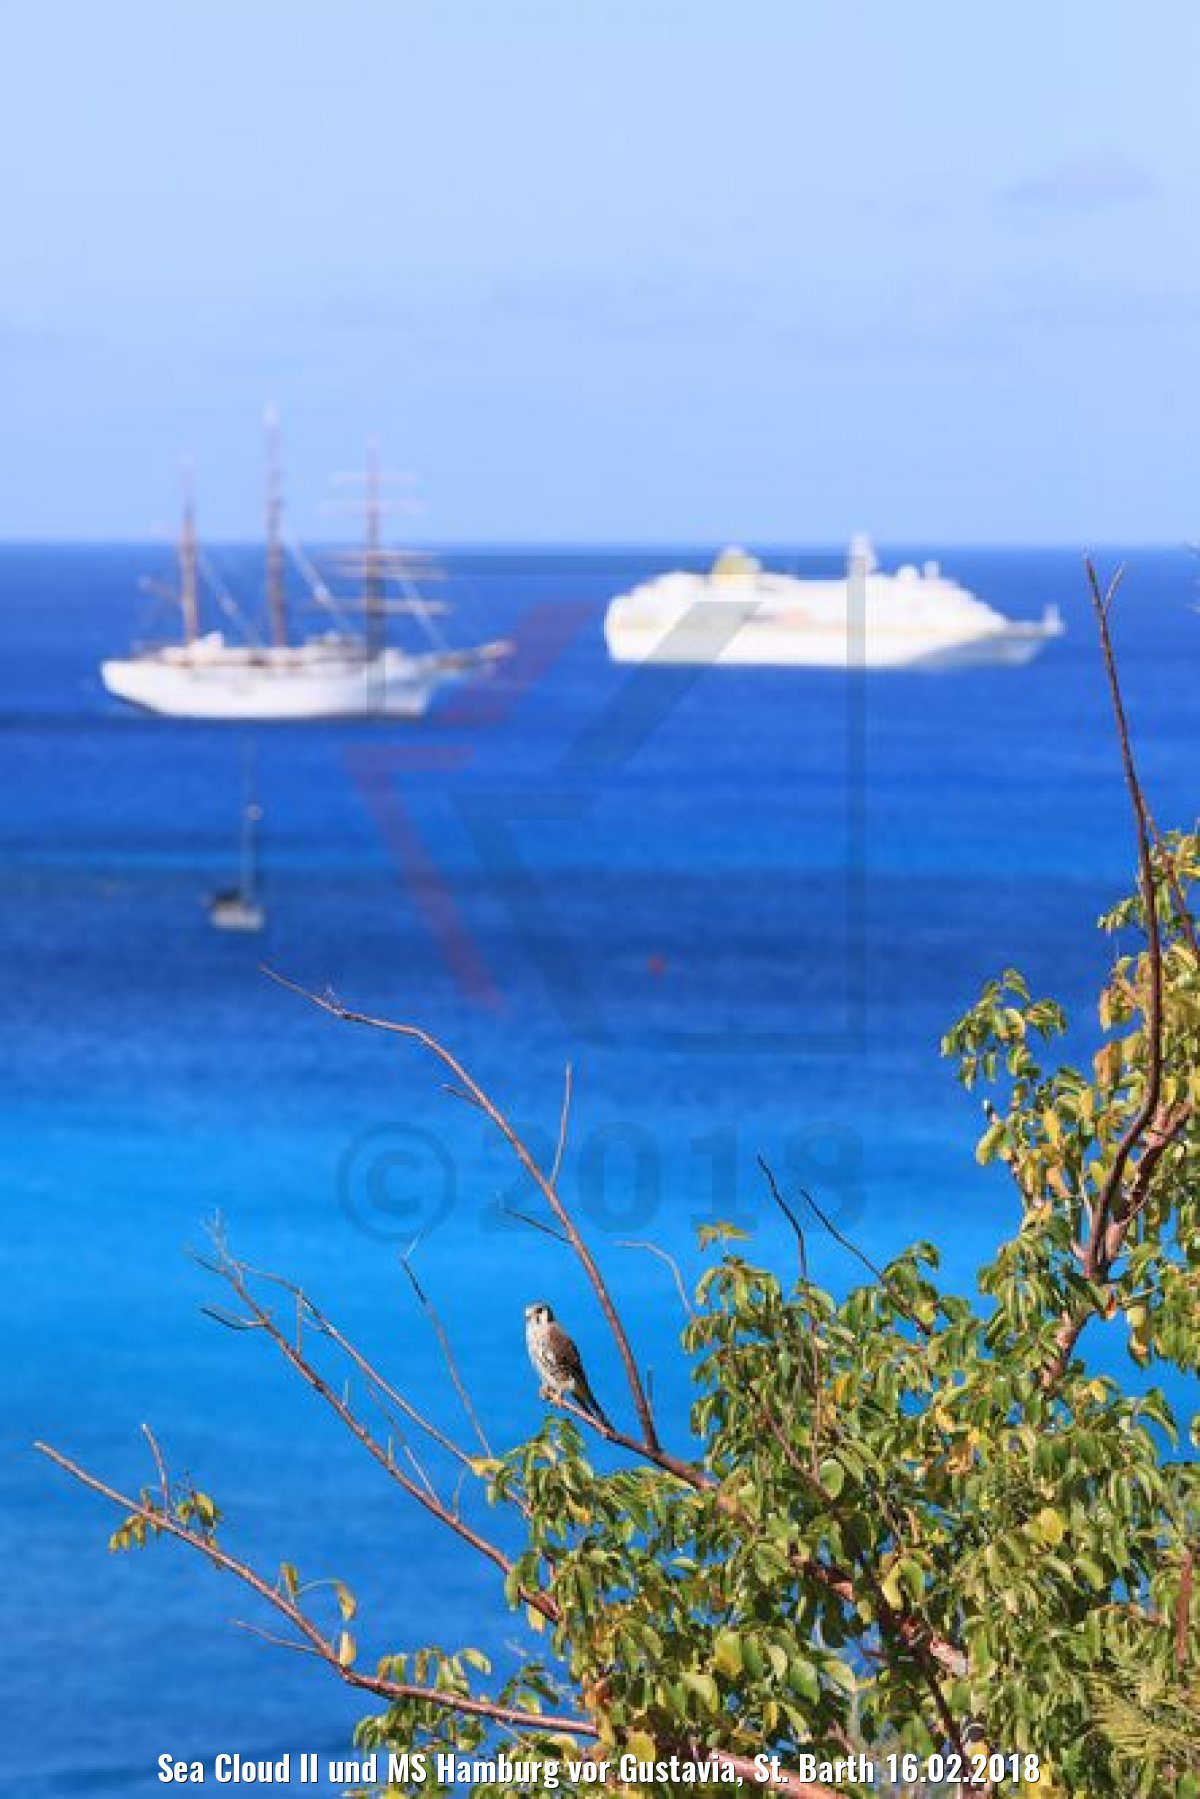 Sea Cloud II und MS Hamburg vor Gustavia, St. Barth 16.02.2018